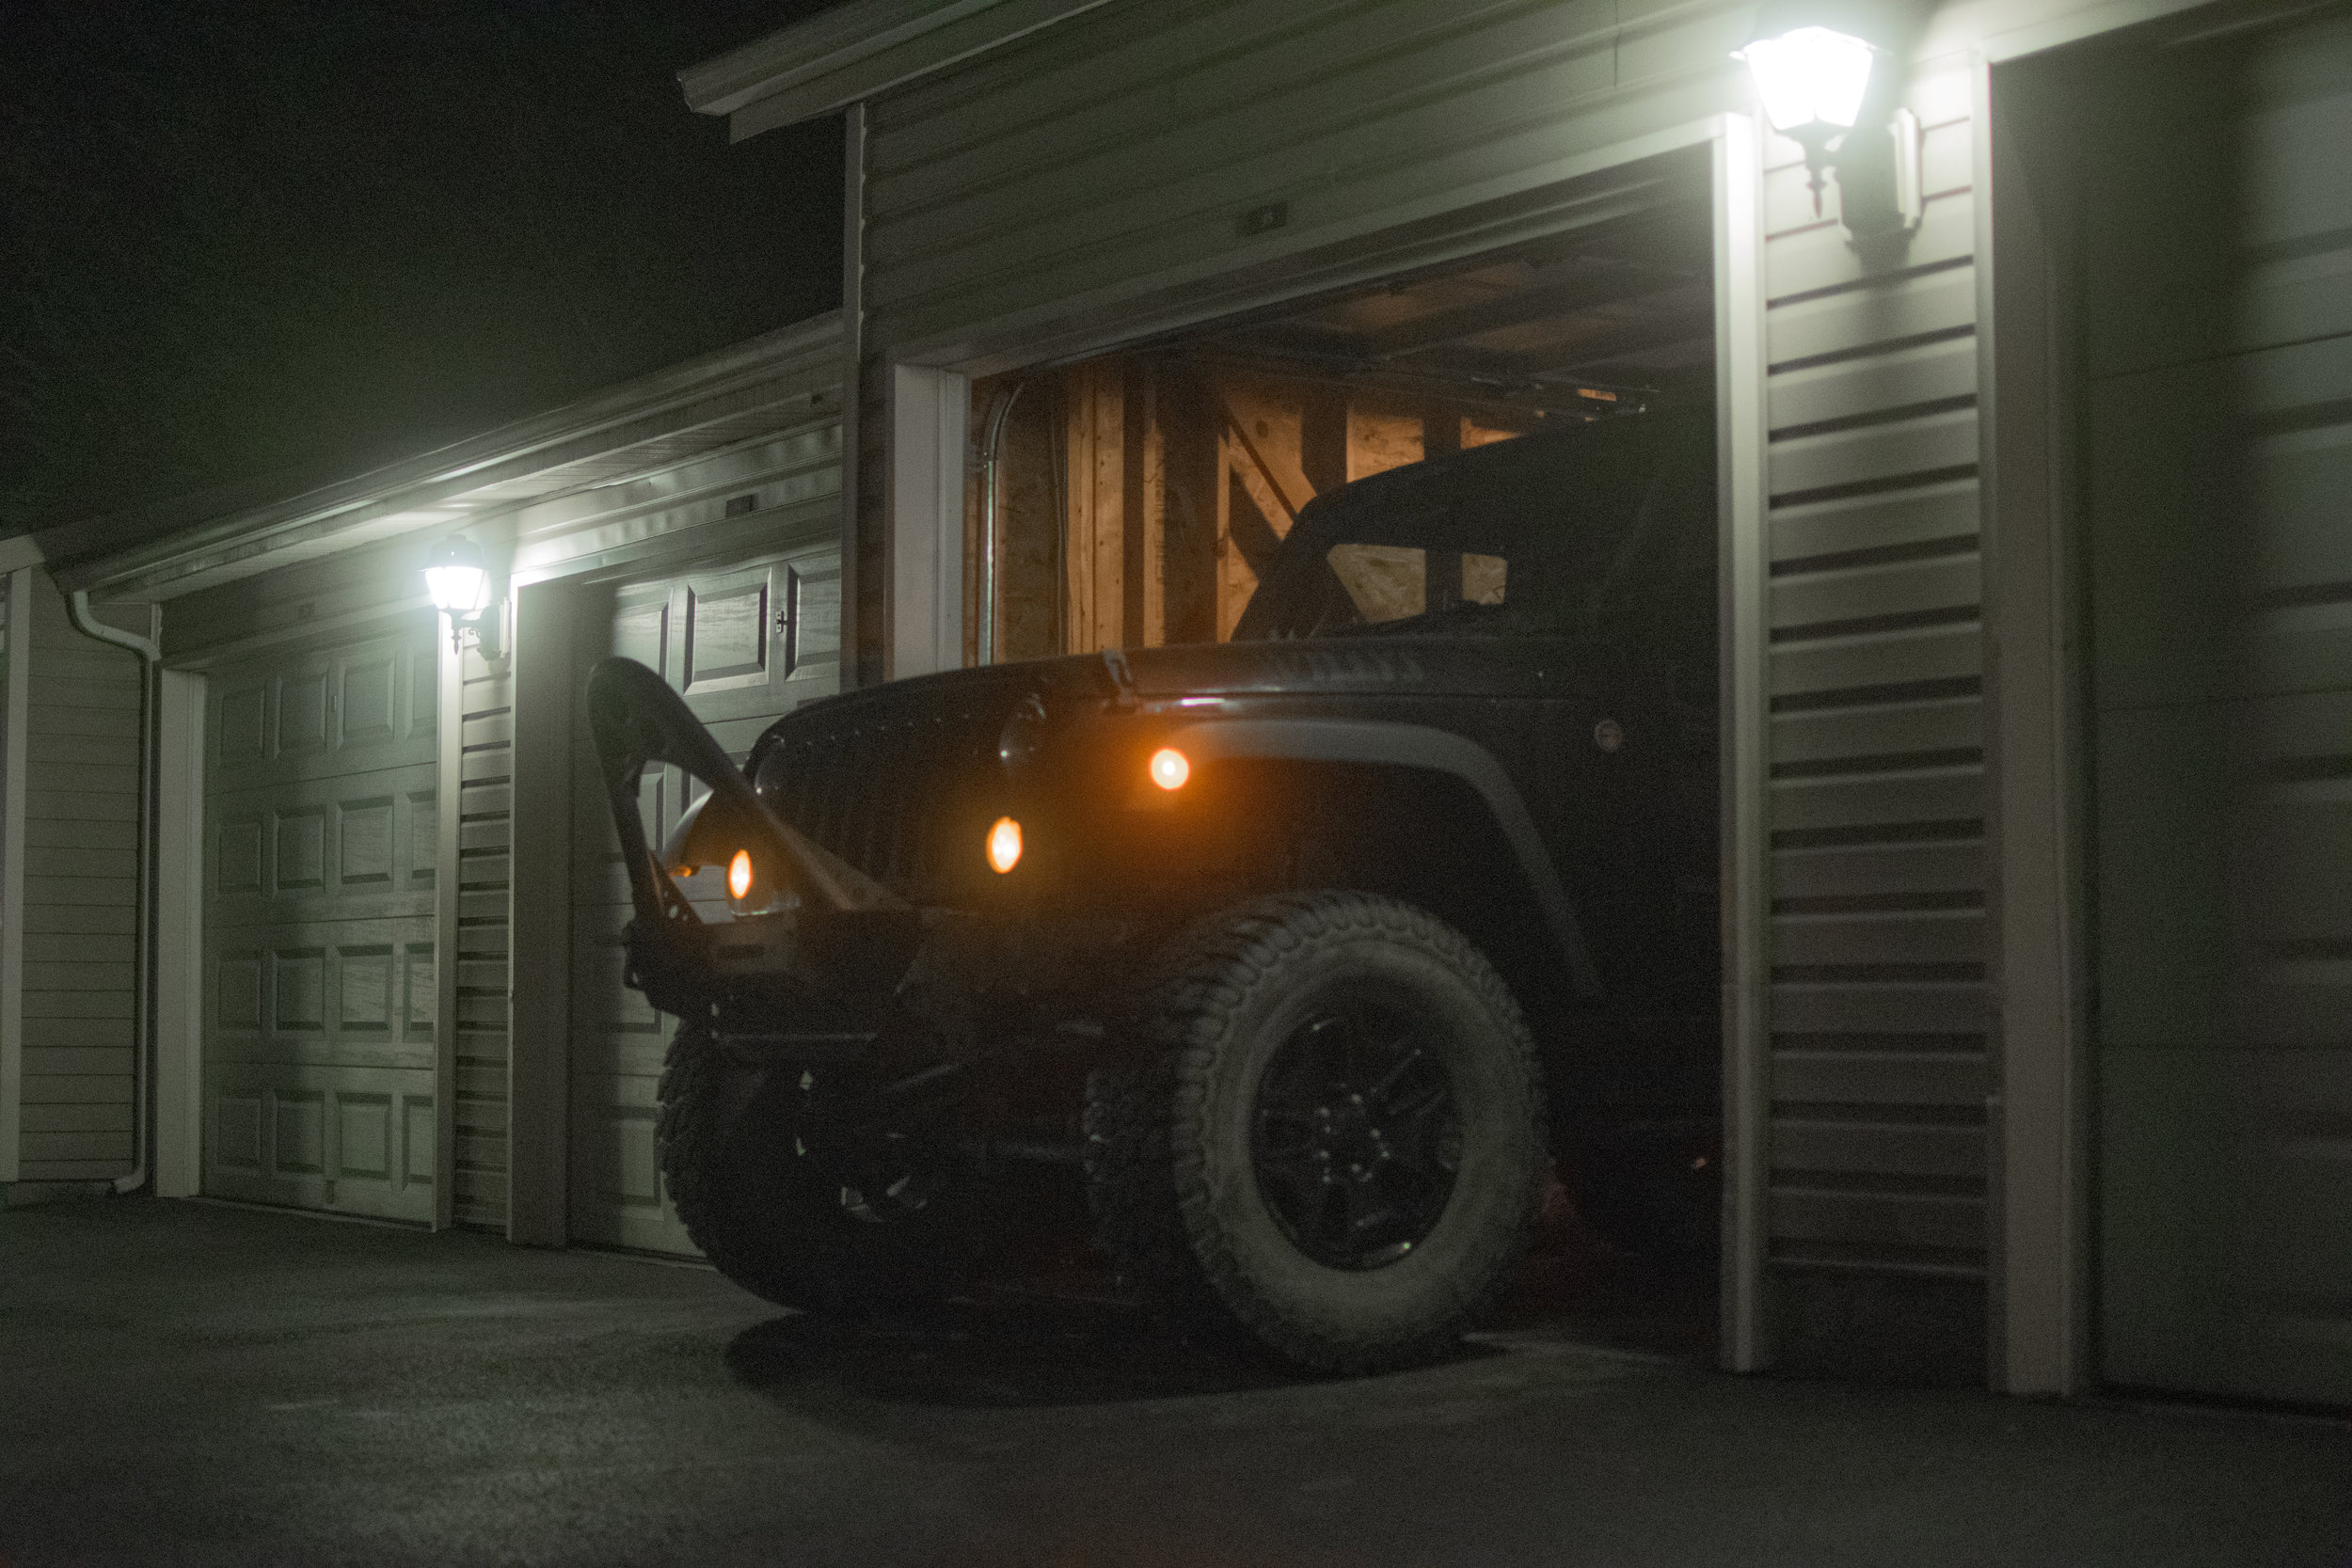 Rolling out of the garage.